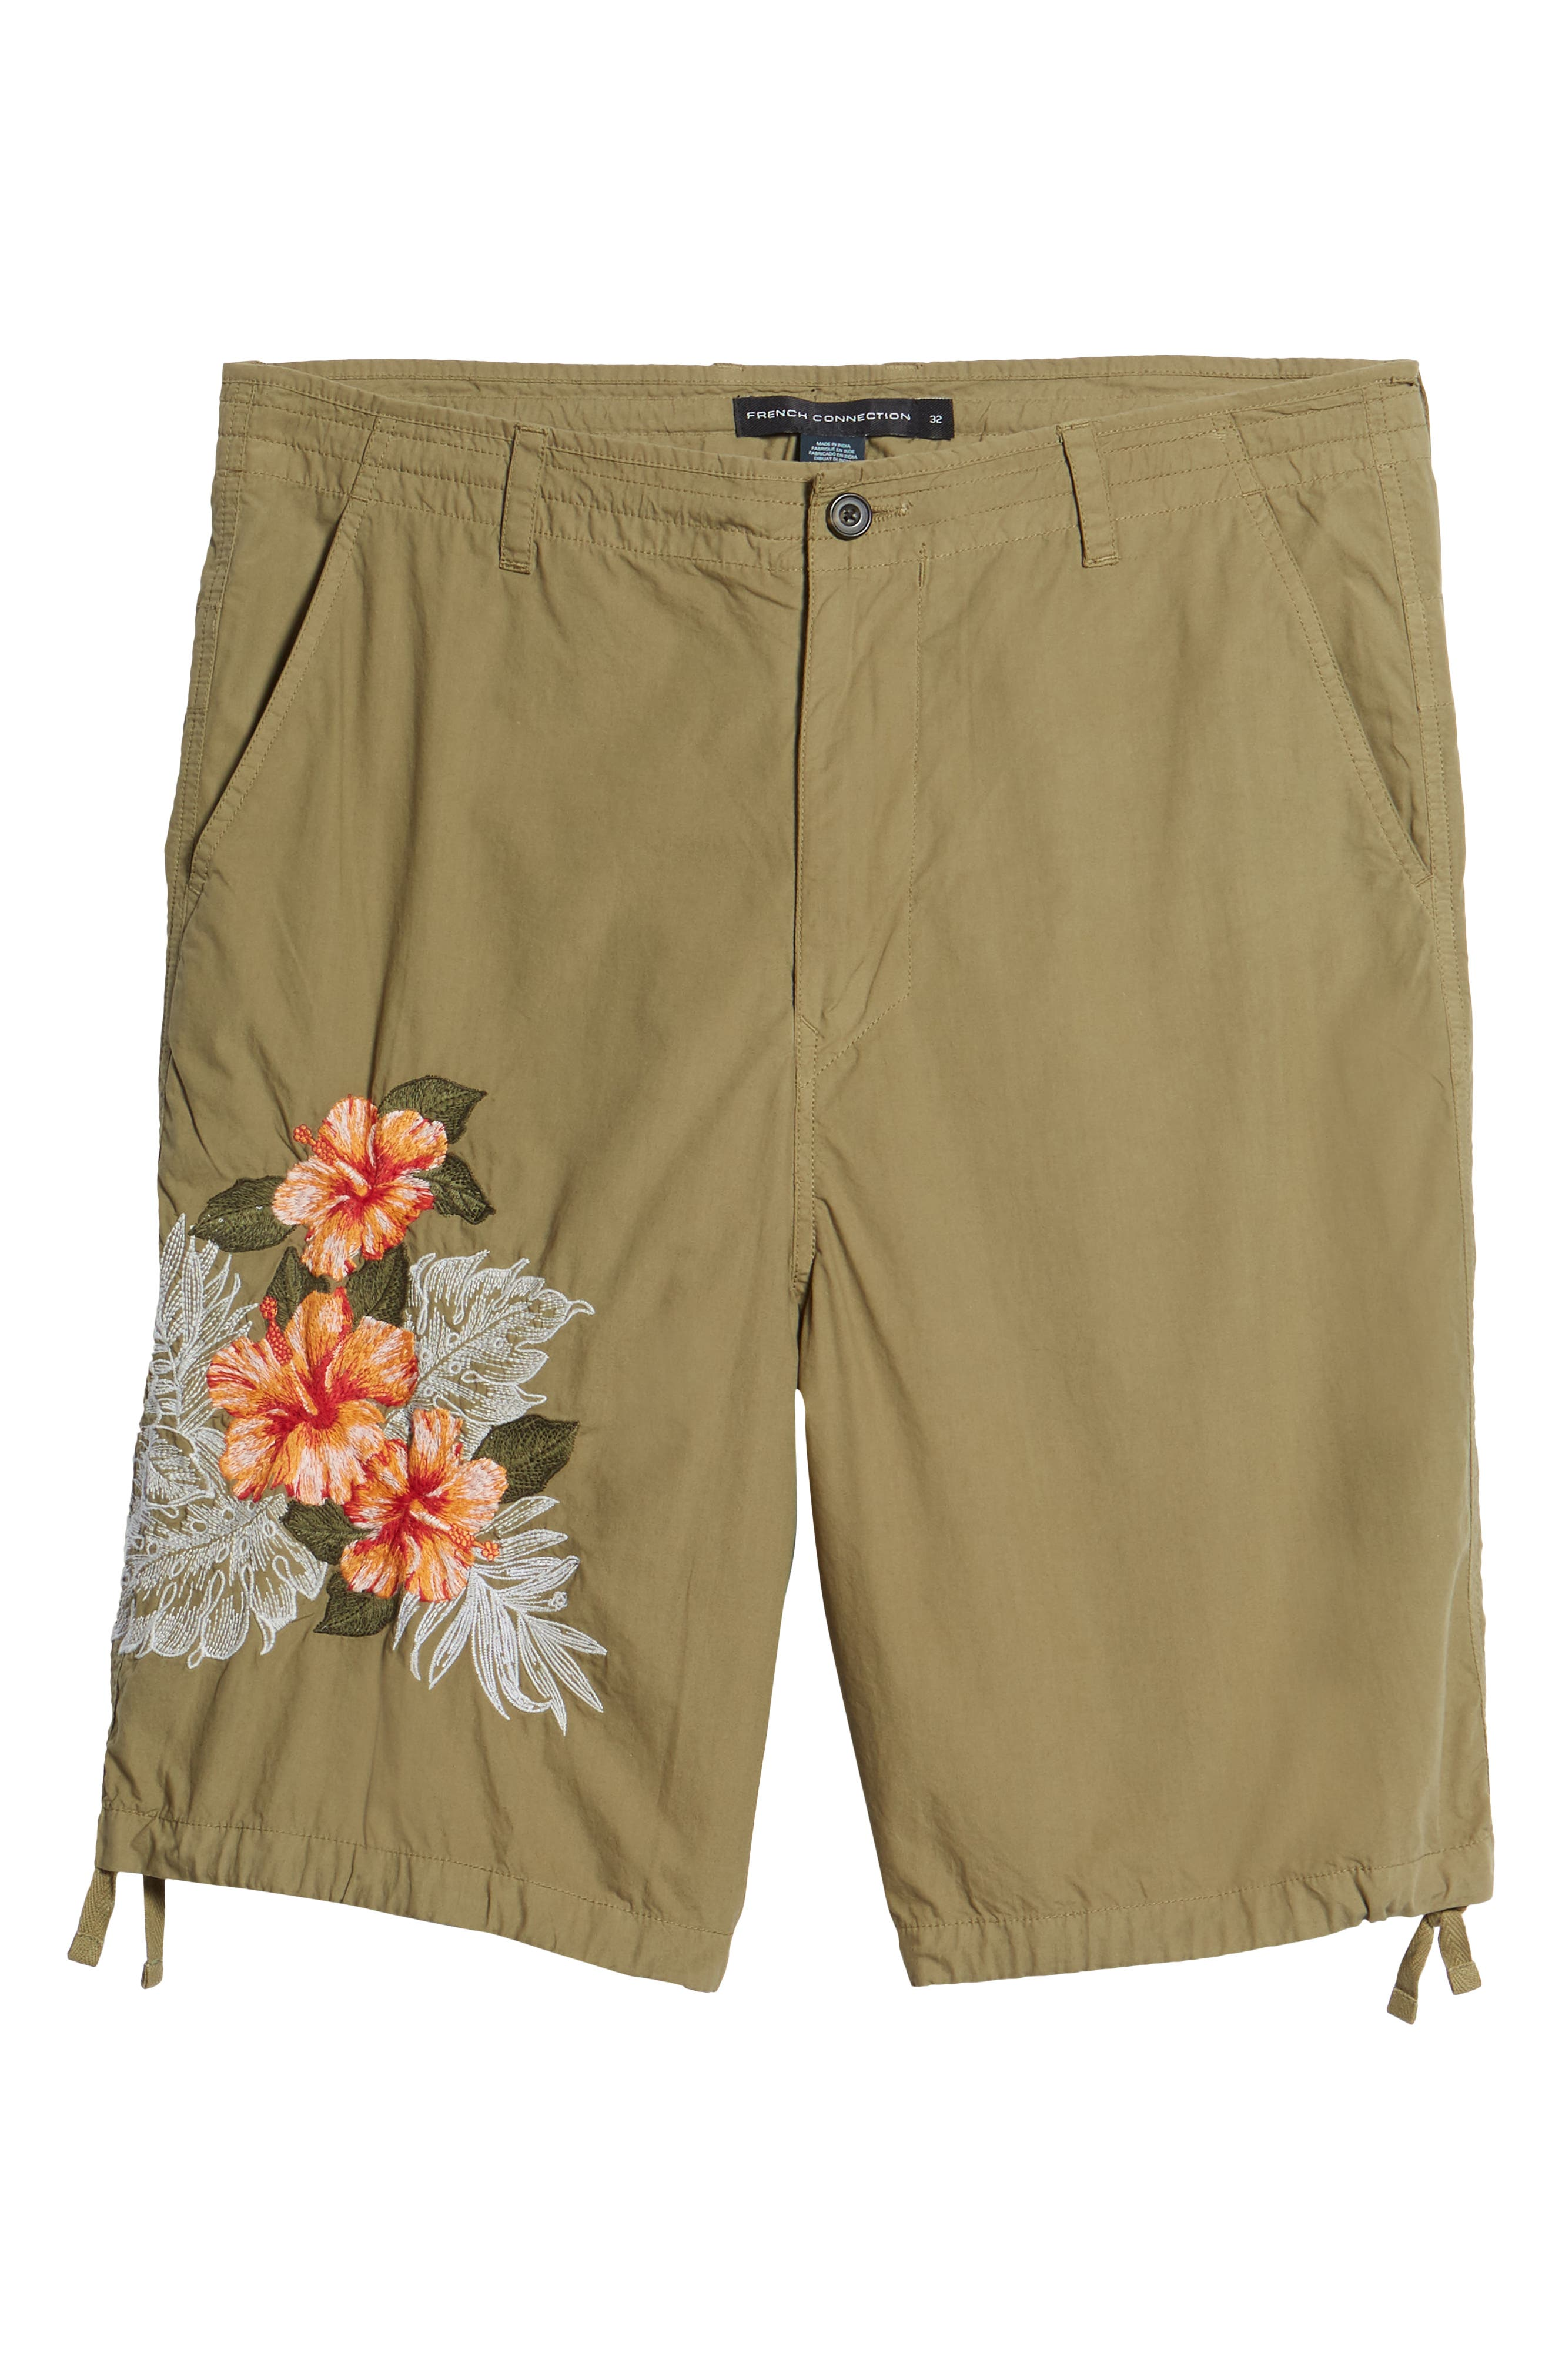 Embroidered Poplin Shorts,                             Alternate thumbnail 6, color,                             Deep Lichen Green